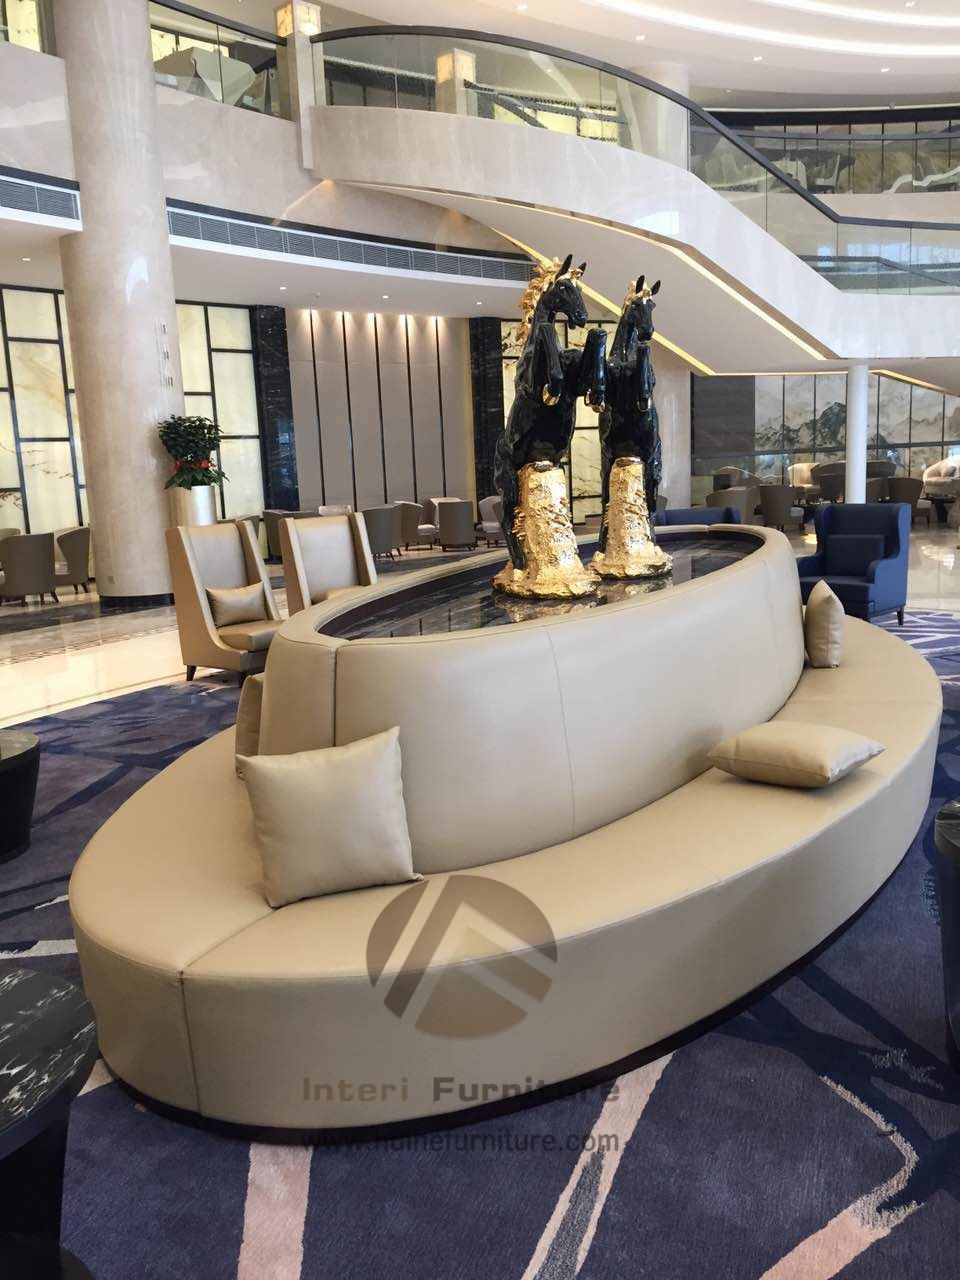 oval sofa furniture bed sectional big in the public resting place central part of lobby